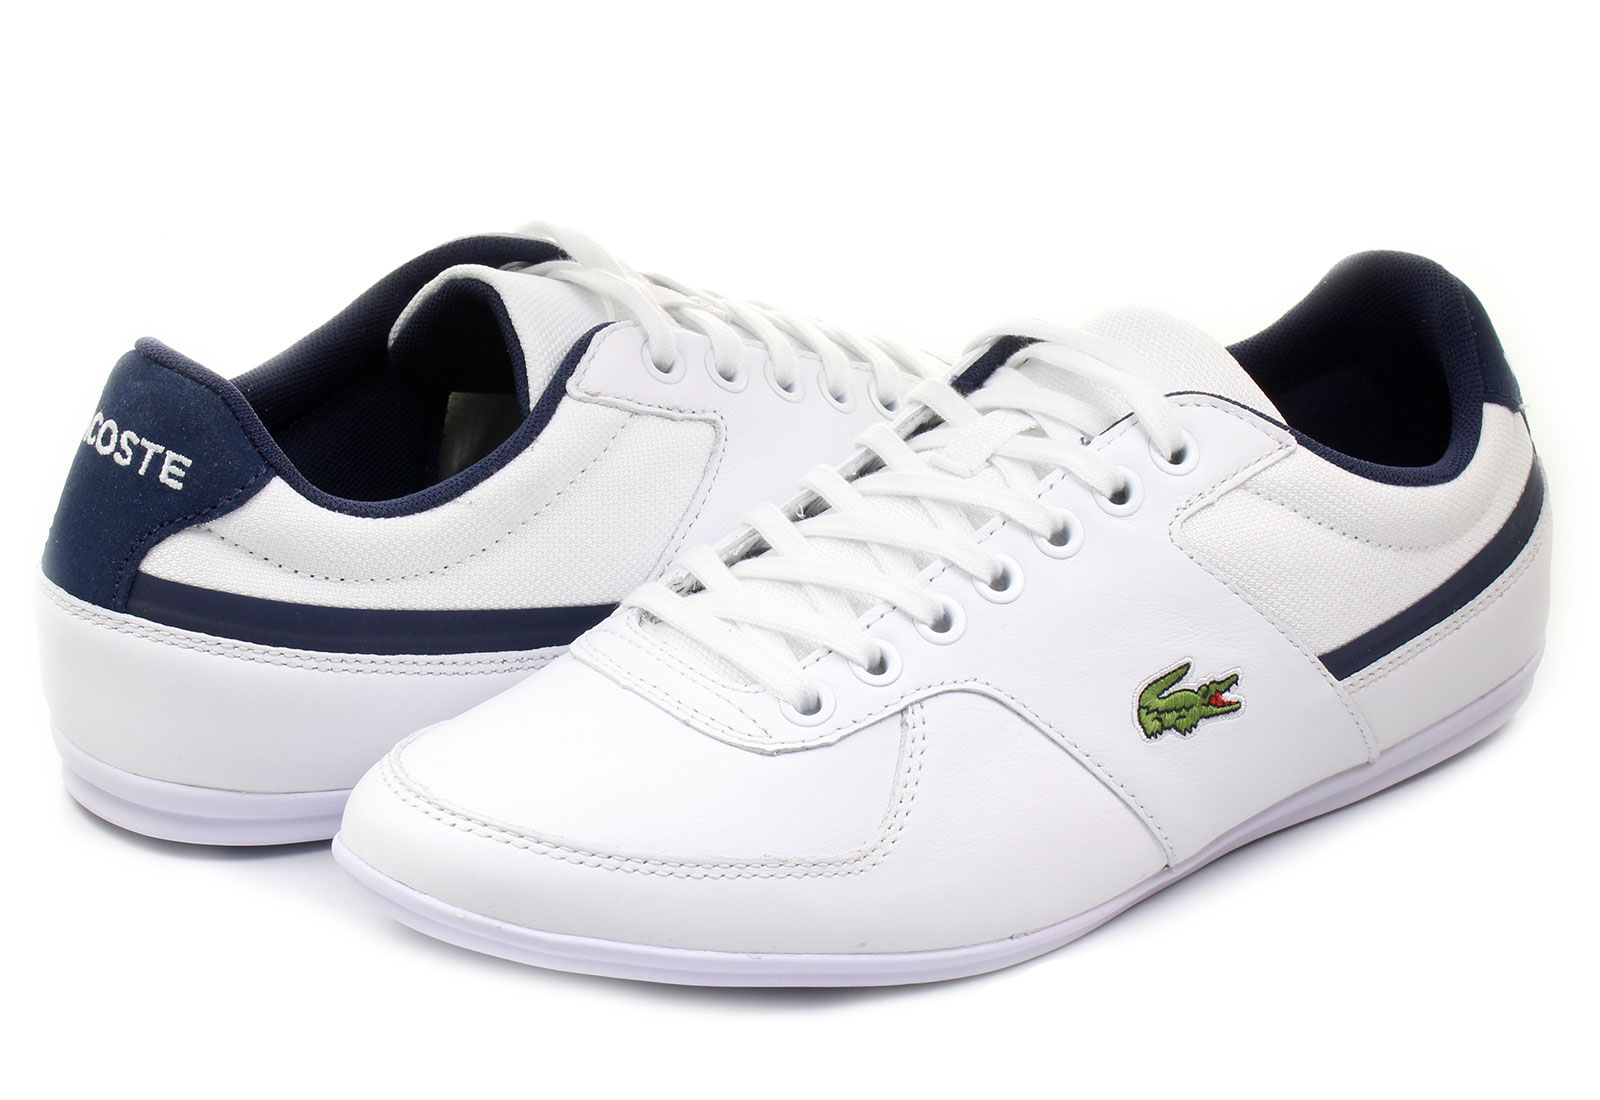 Lacoste Shoes Price